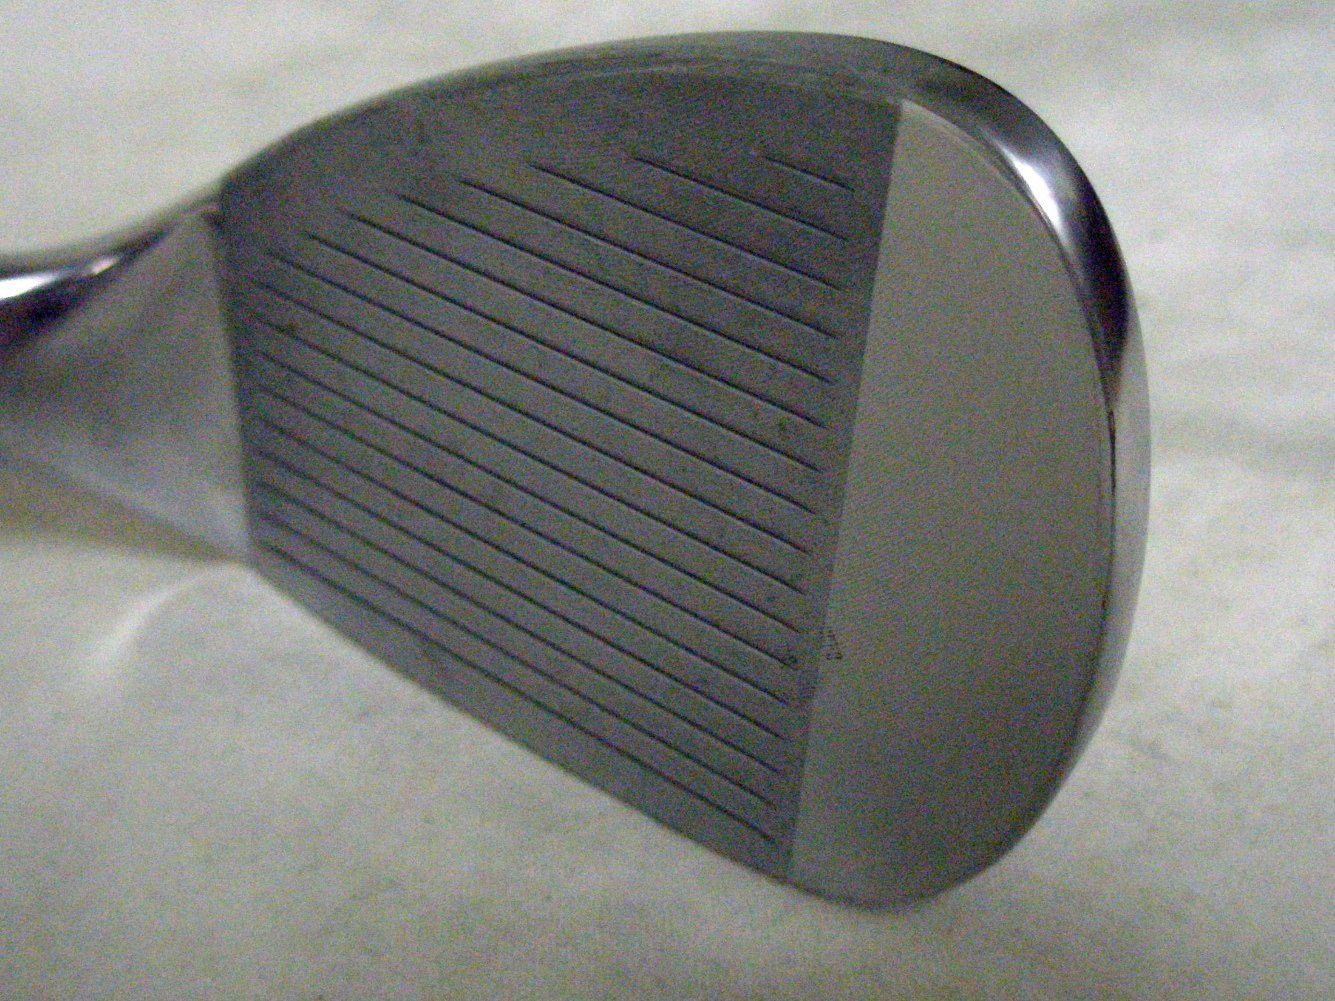 Amazon.com: Titleist SM5 vokey Tour cromo Wedge Izquierda 54 ...